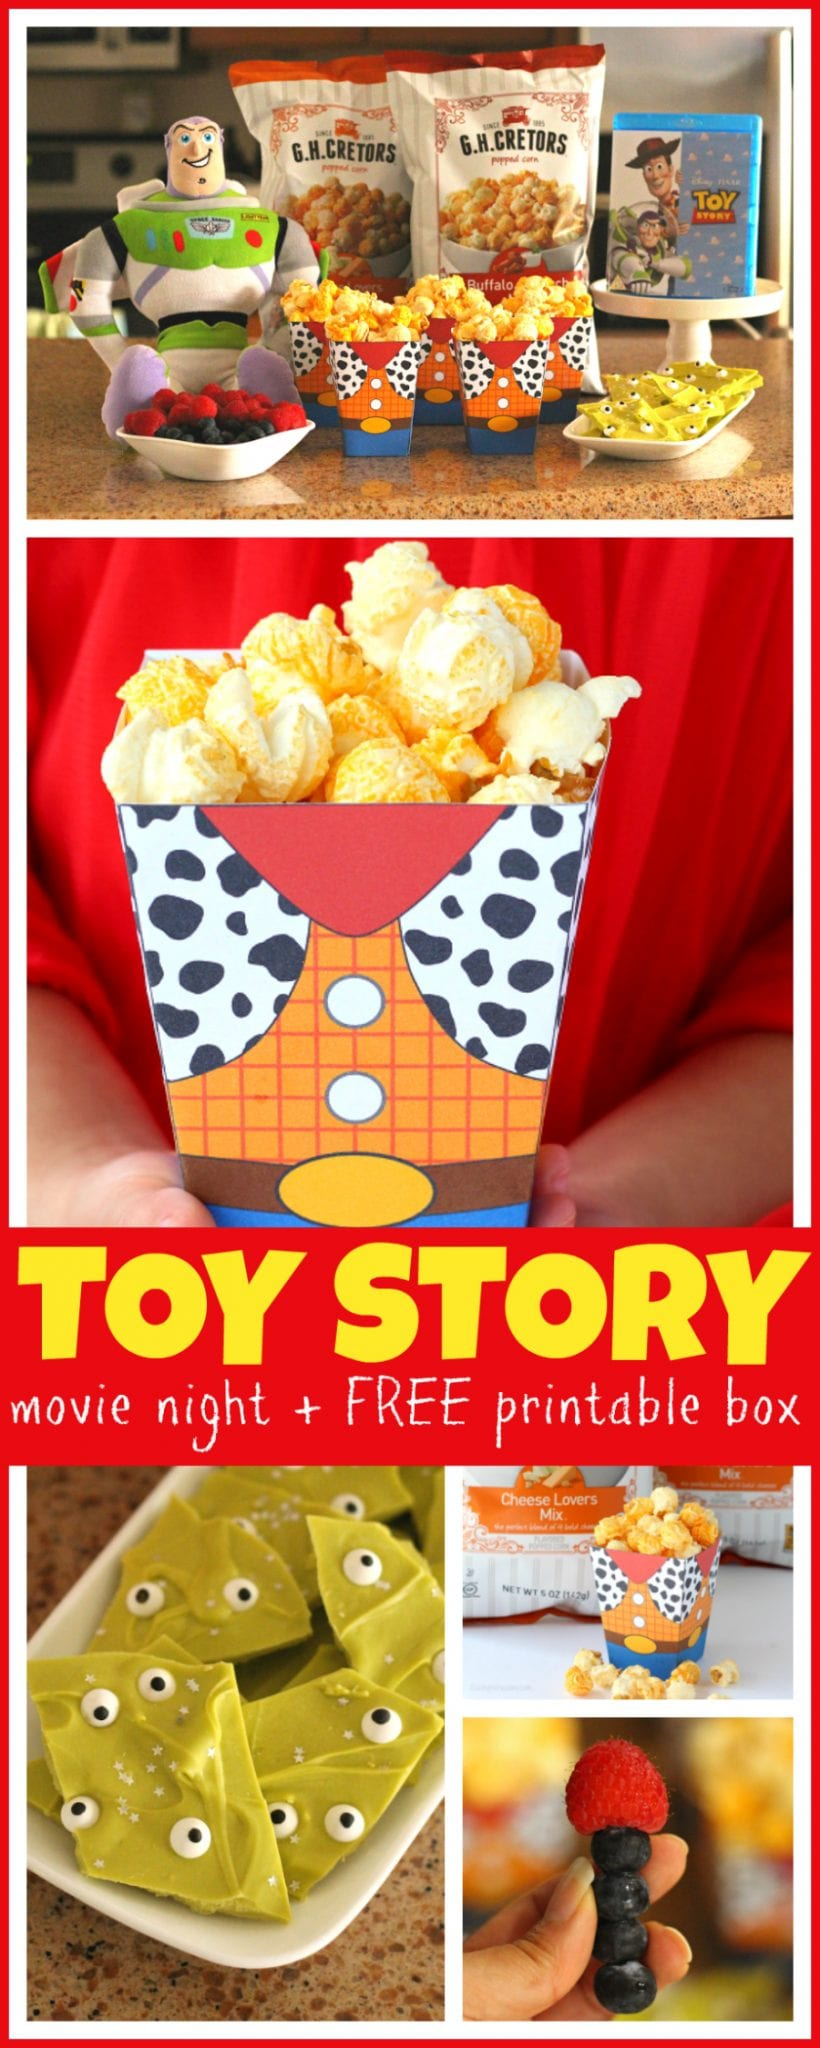 Toy story movie night ideas